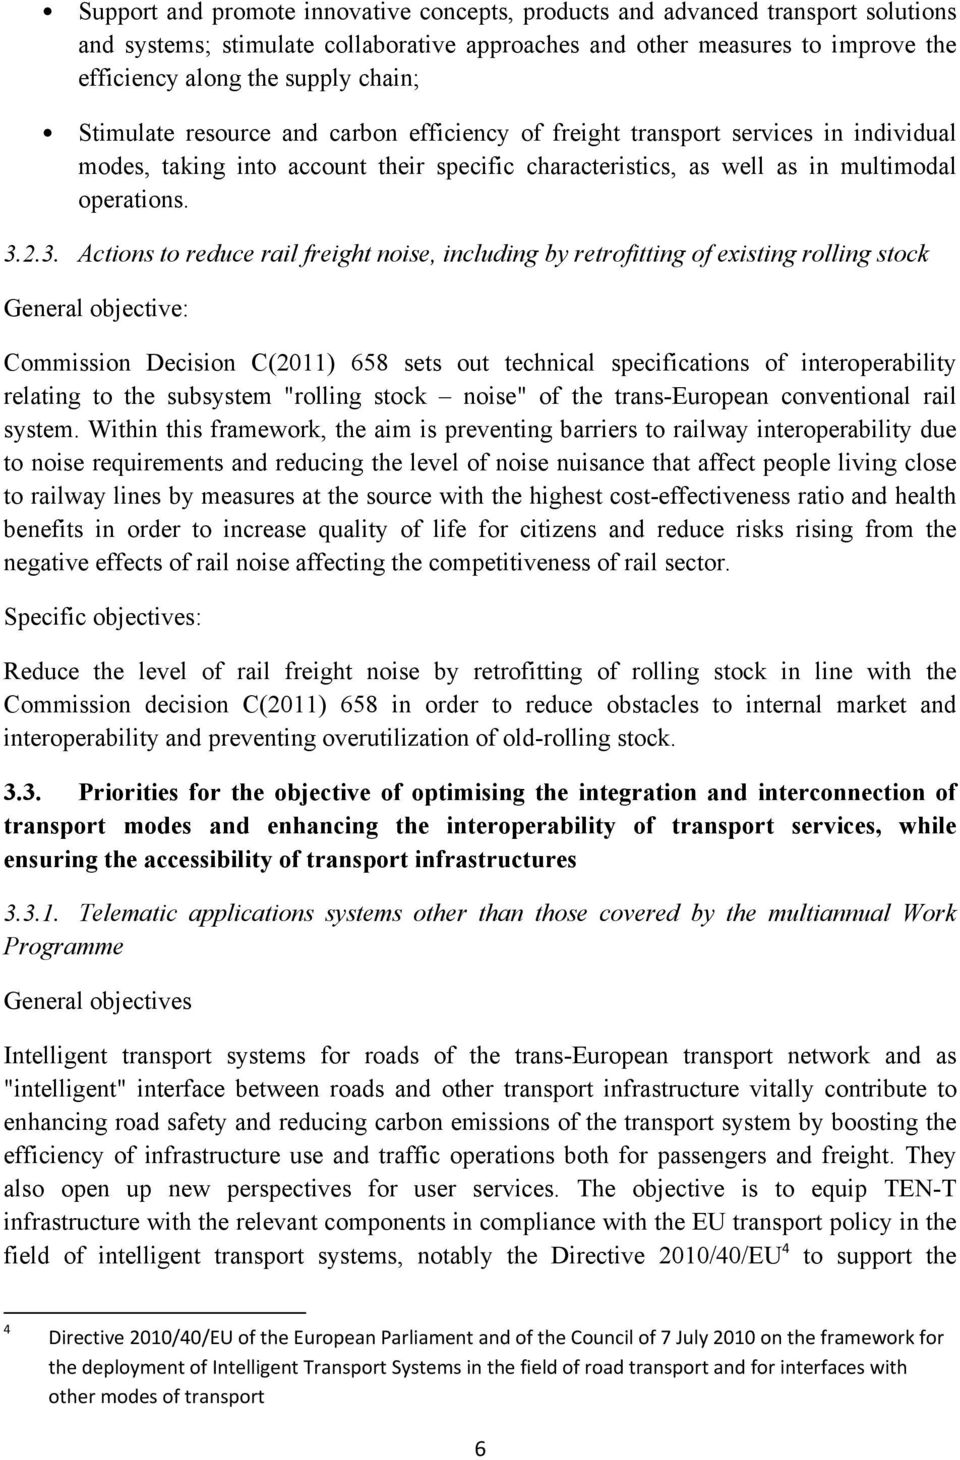 2.3. Actions to reduce rail freight noise, including by retrofitting of existing rolling stock General objective: Commission Decision C(2011) 658 sets out technical specifications of interoperability